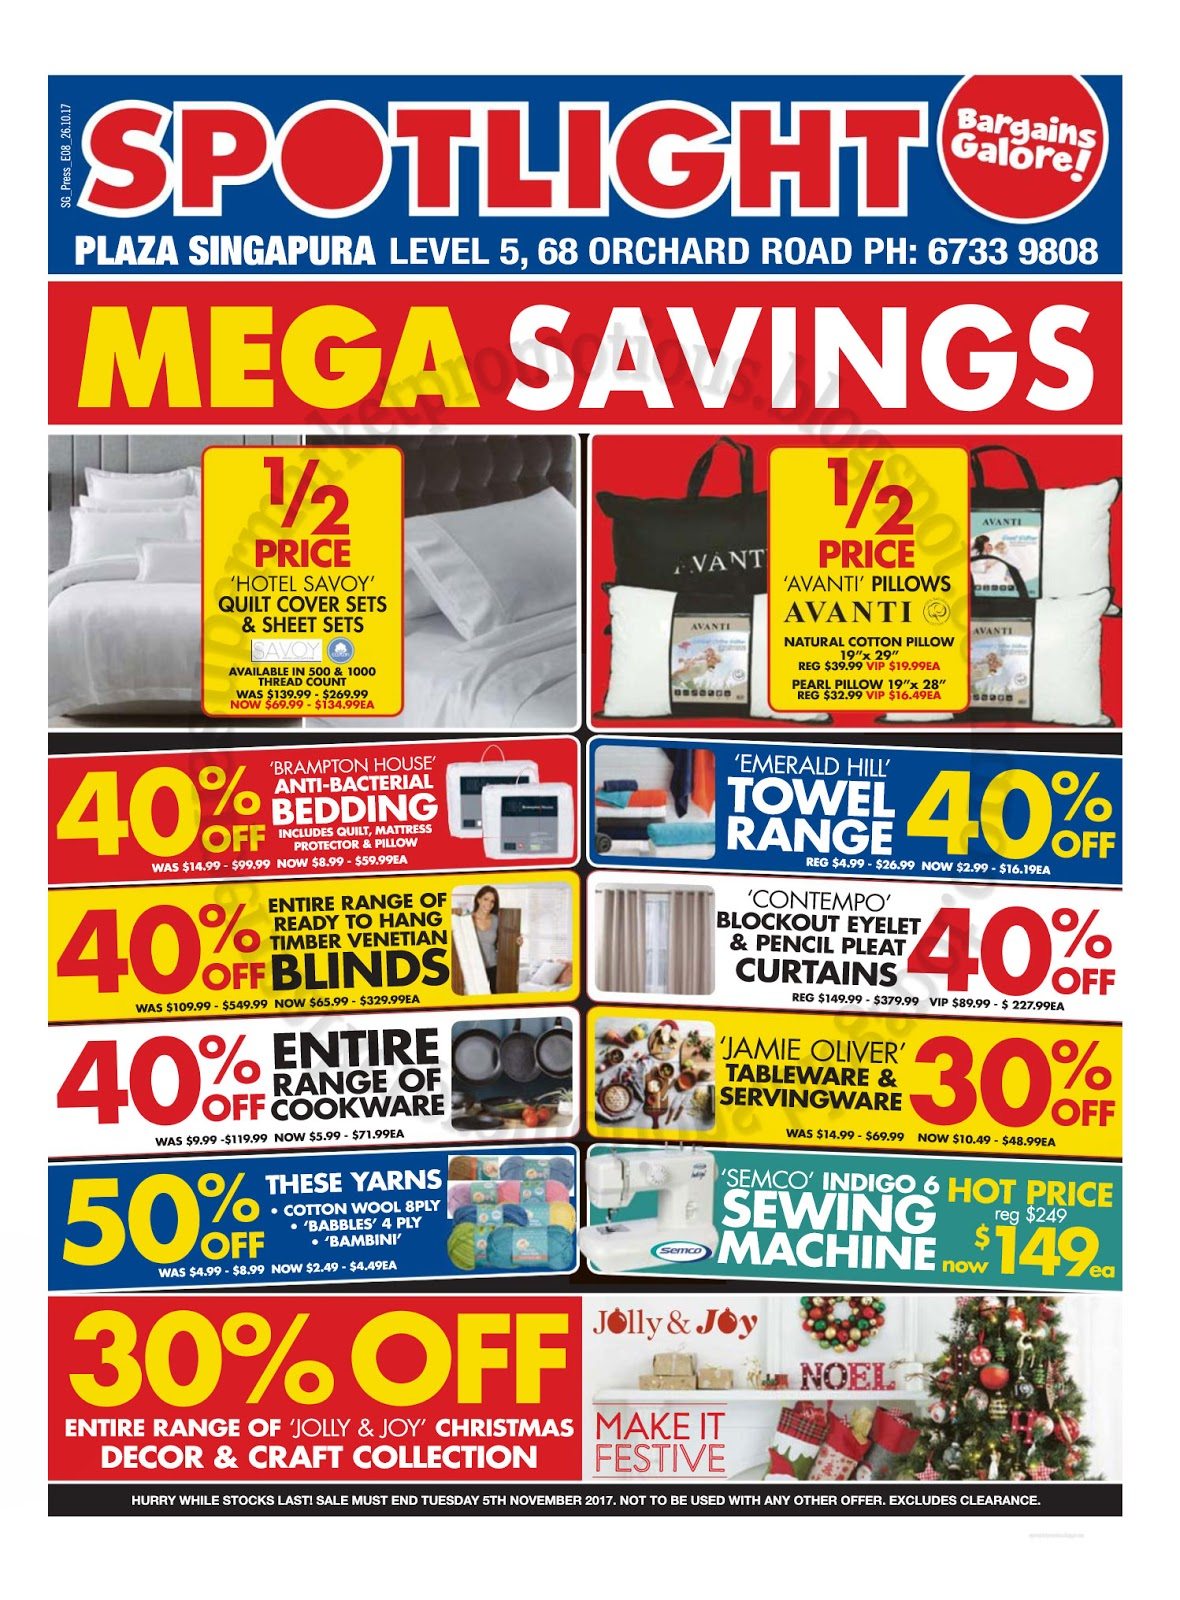 Spotlight Eyelet Curtains Spotlight Mega Savings Sale 26 October 2017 Supermarket